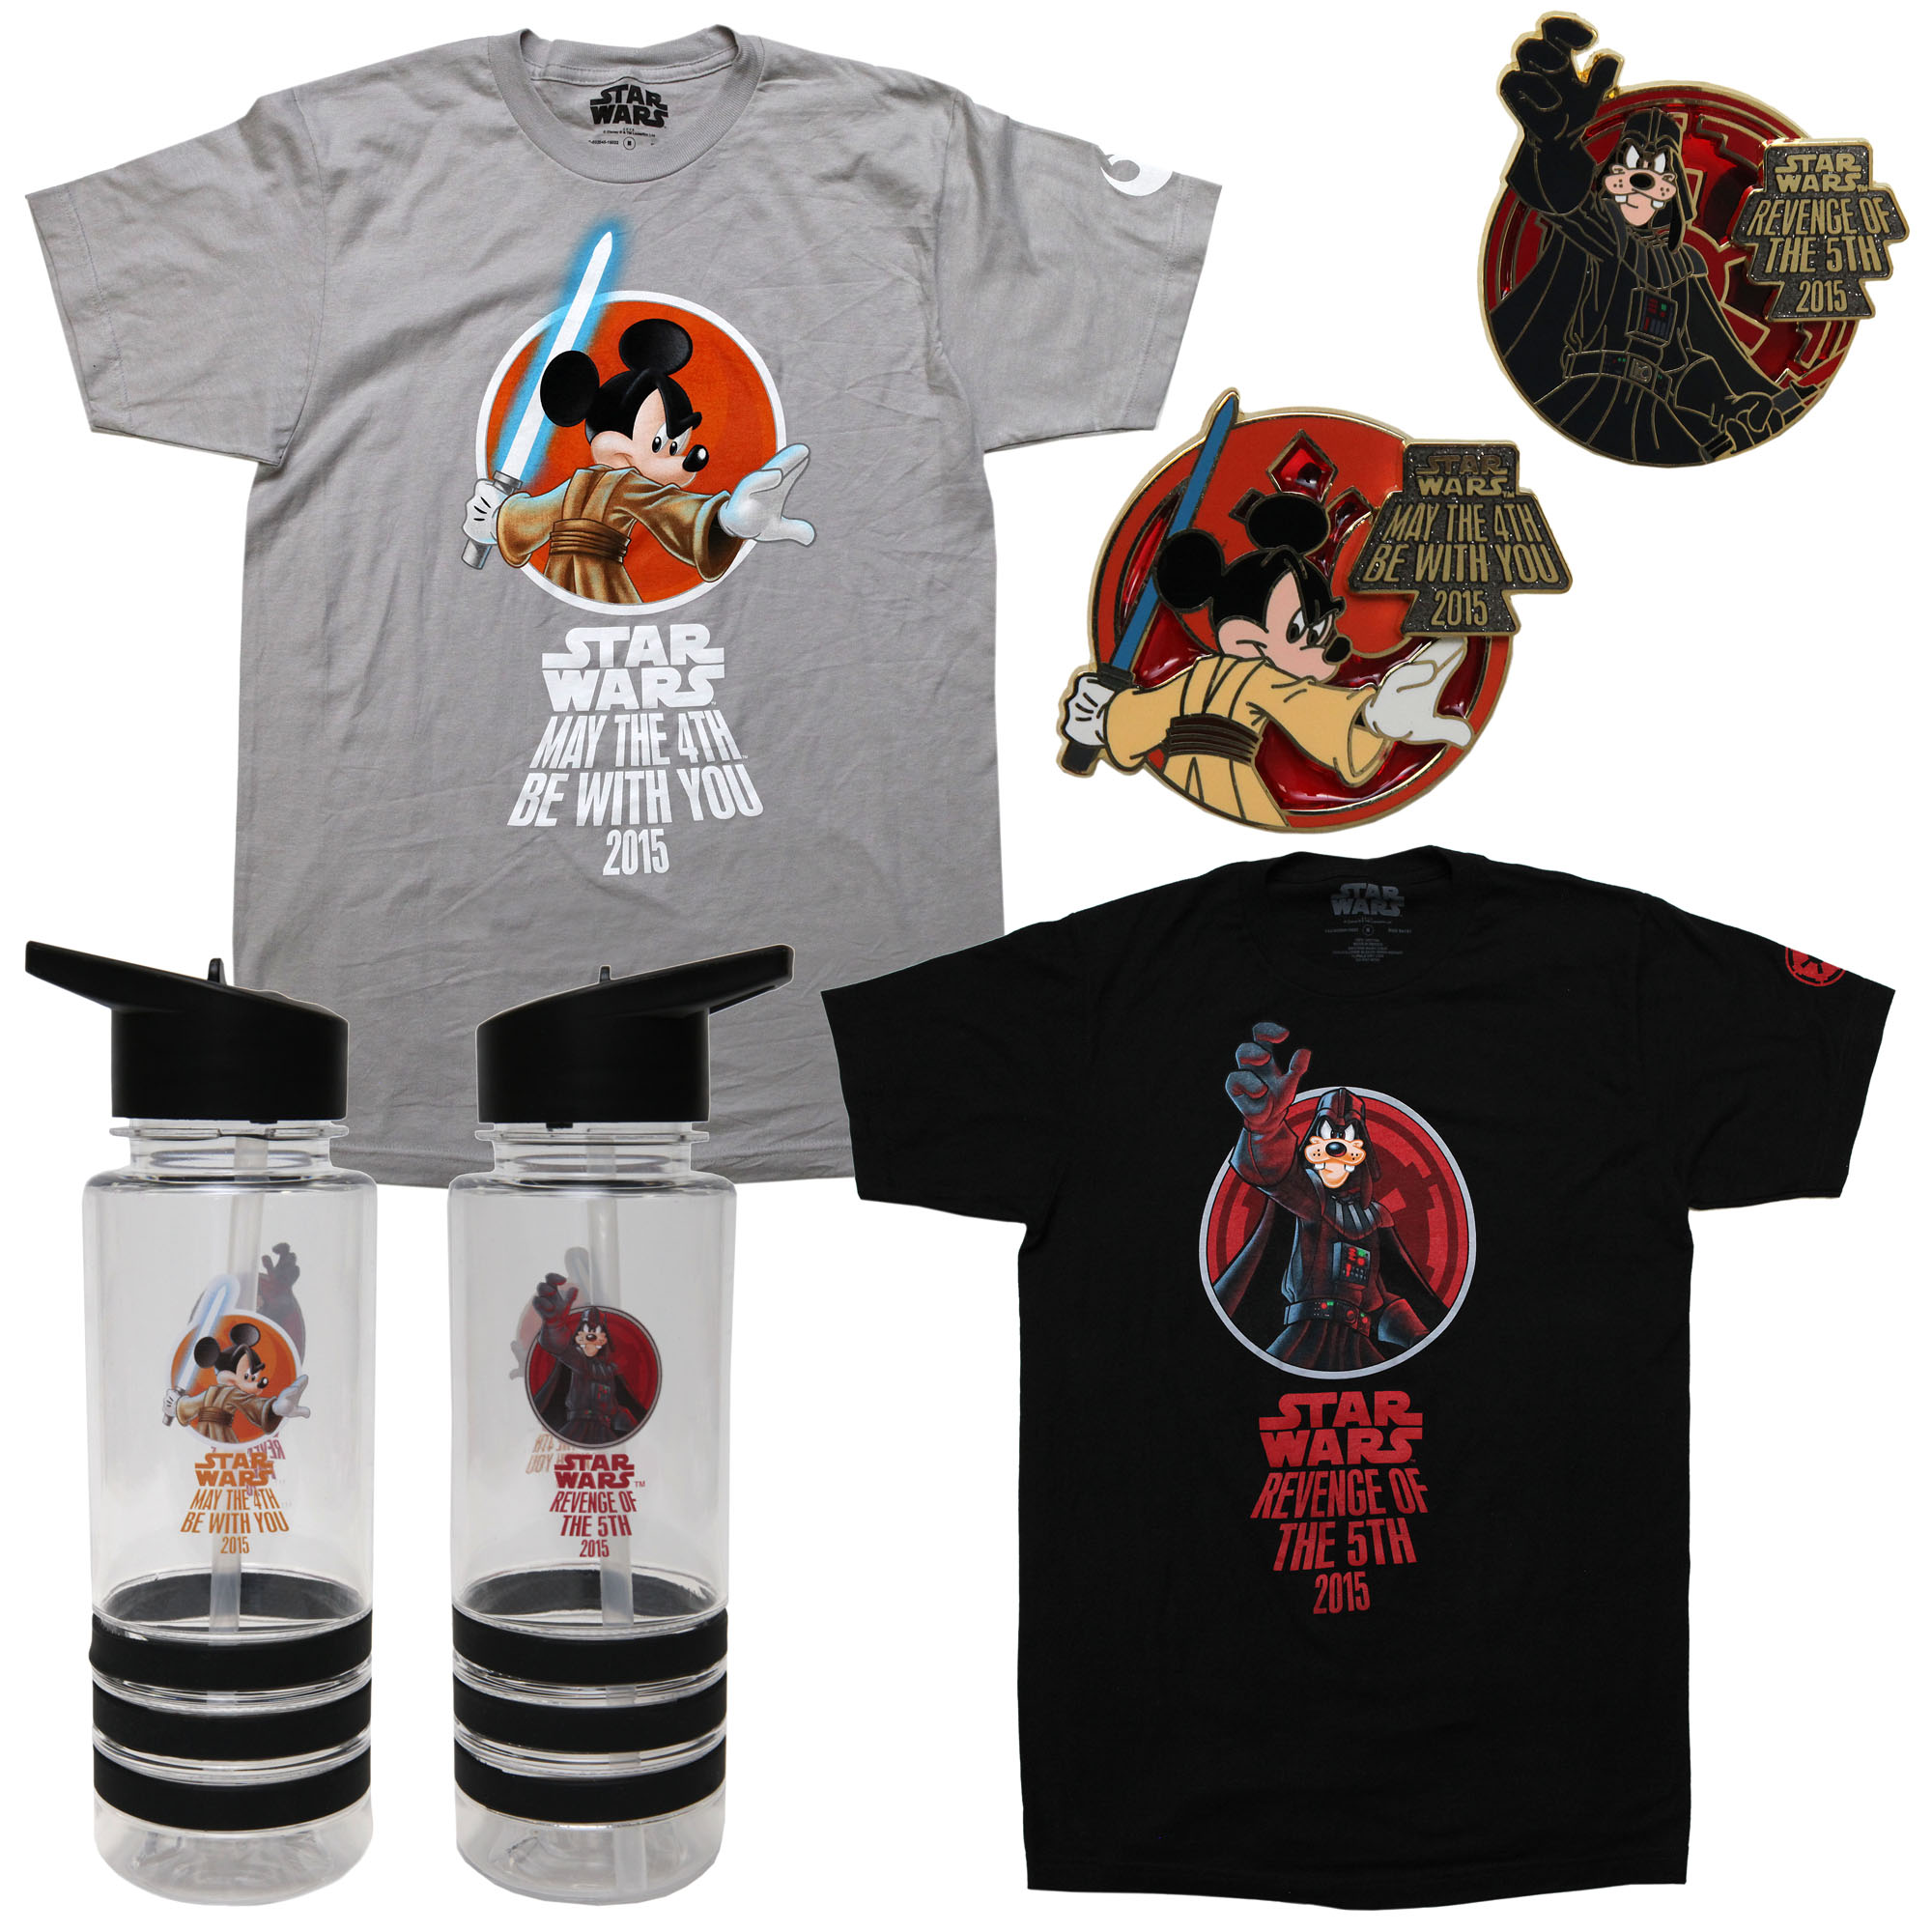 May The Fourth Be With You At Disneyland: New Star Wars Day Merchandise Now Available At Disney